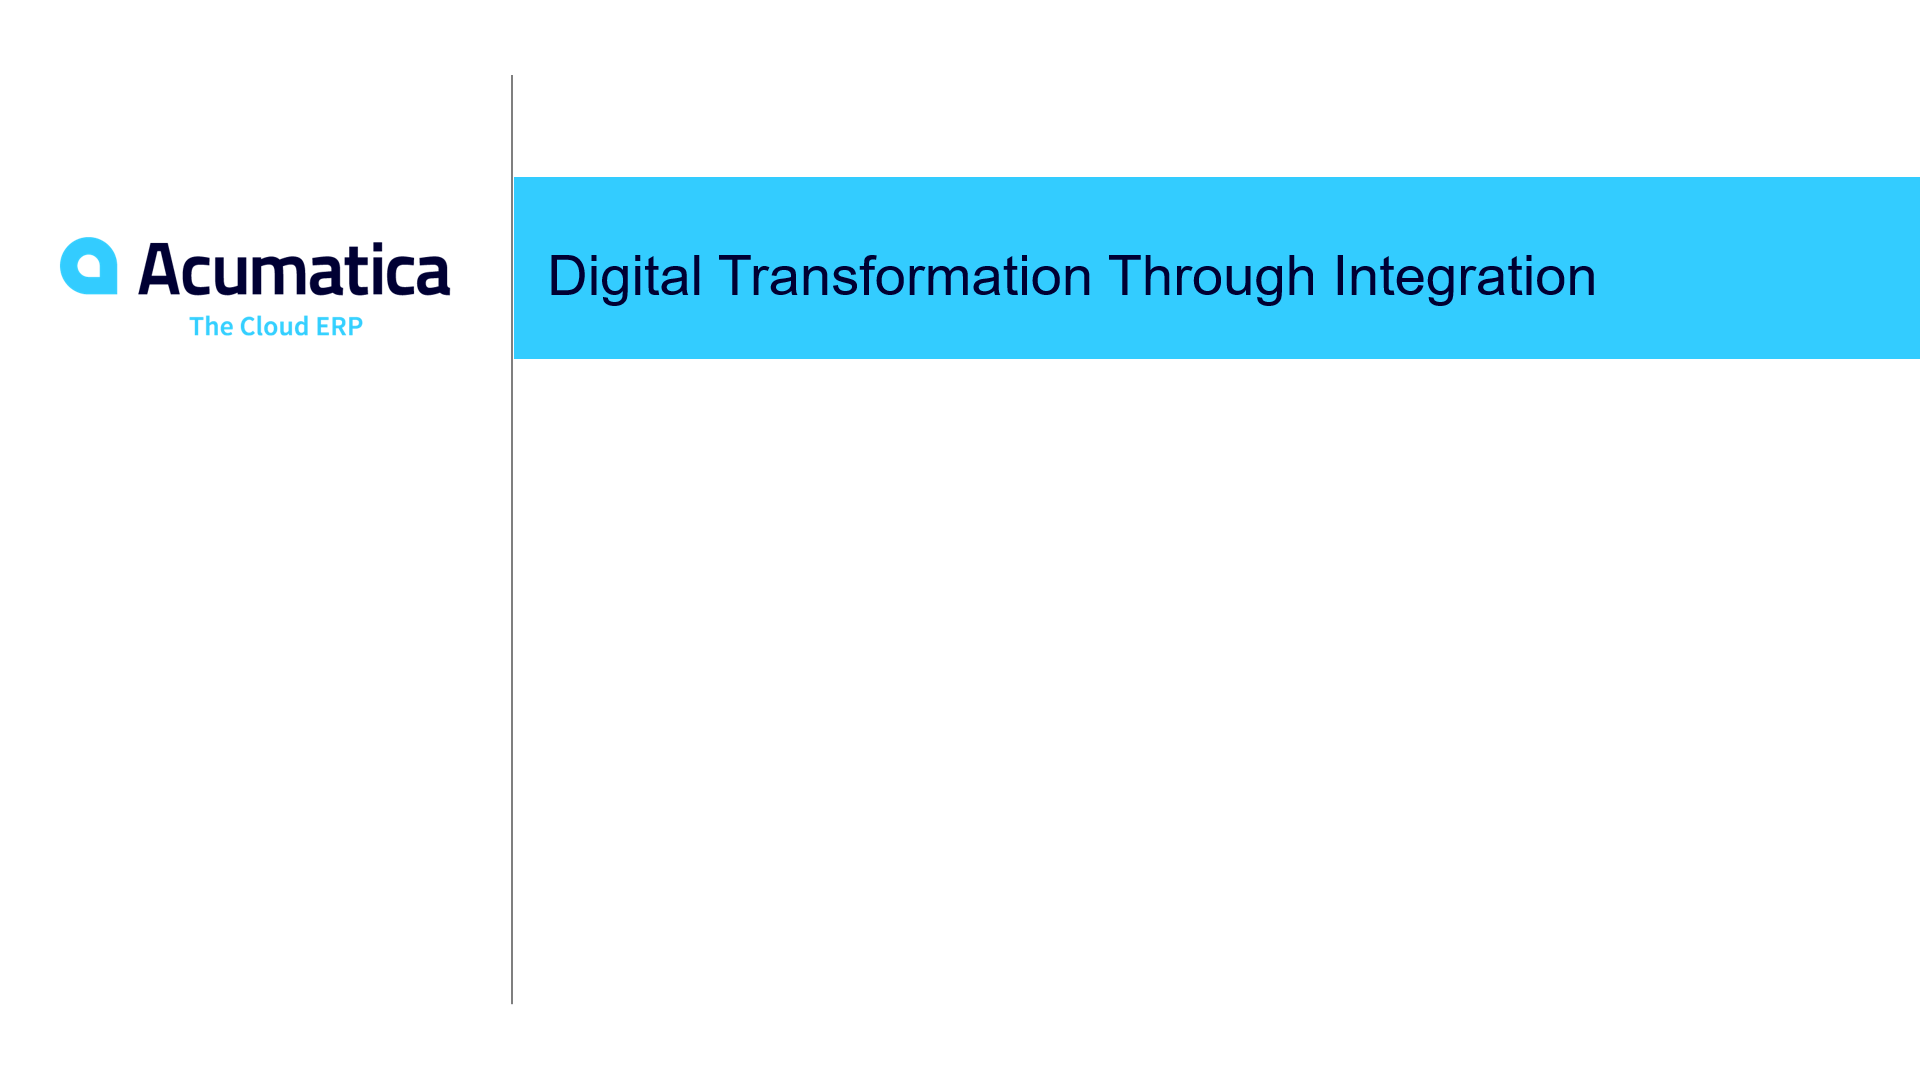 Digital Transformation Through Integration